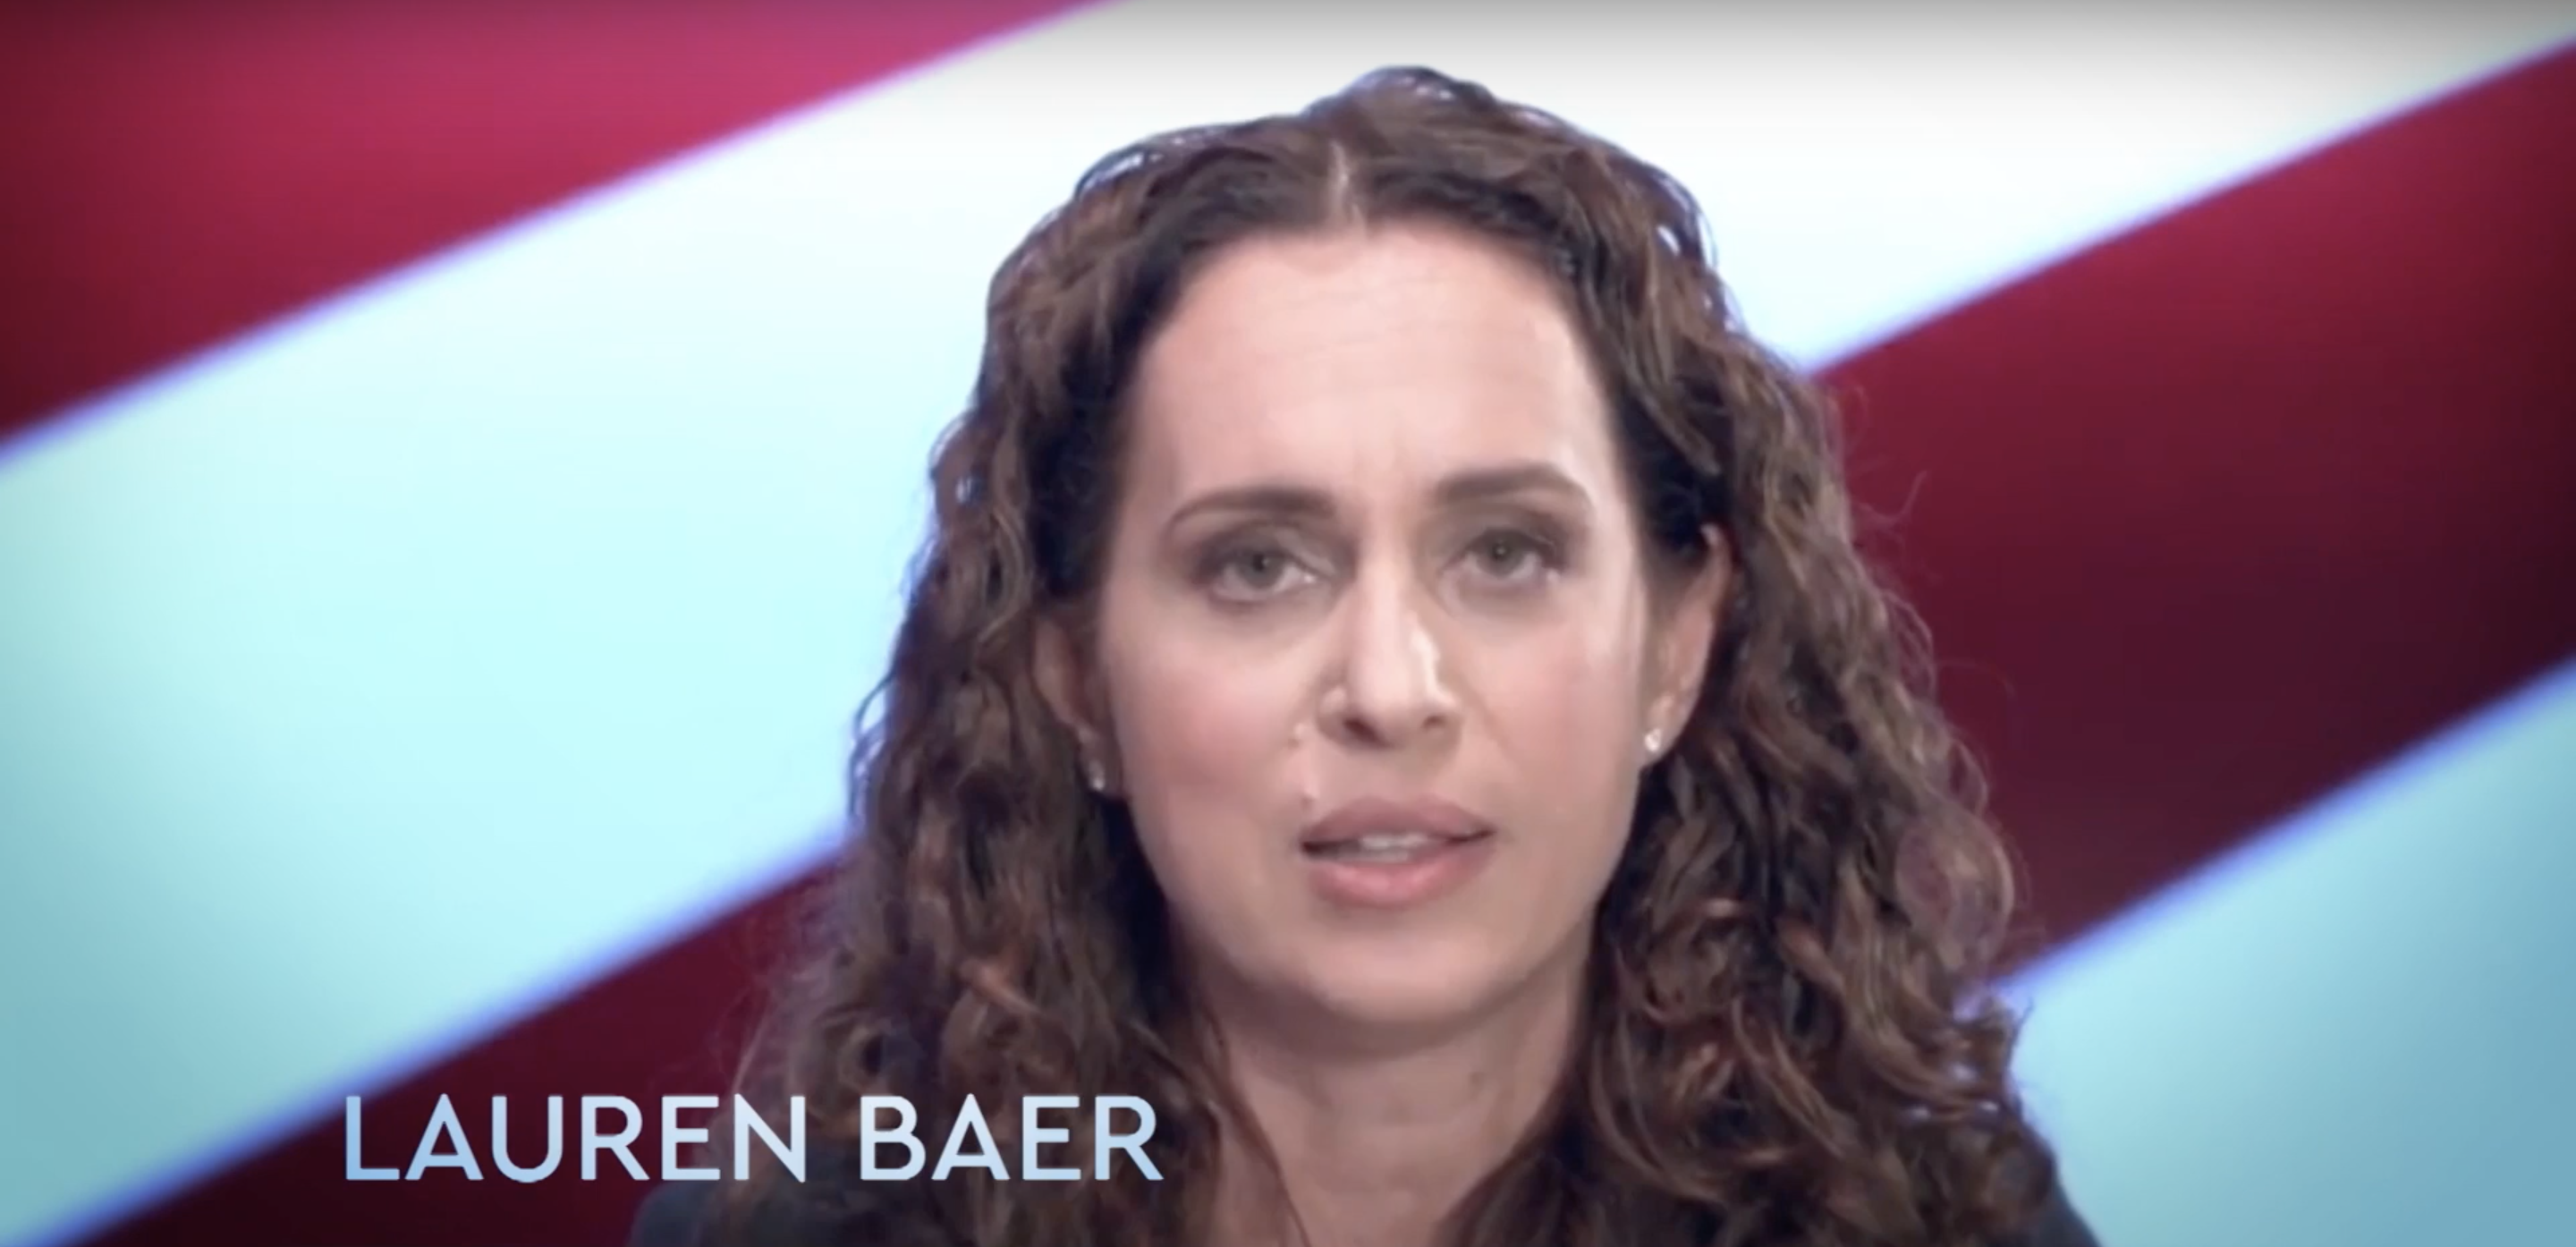 EAAF Sending Big Money Lauren Baer's Way in Race for Environment